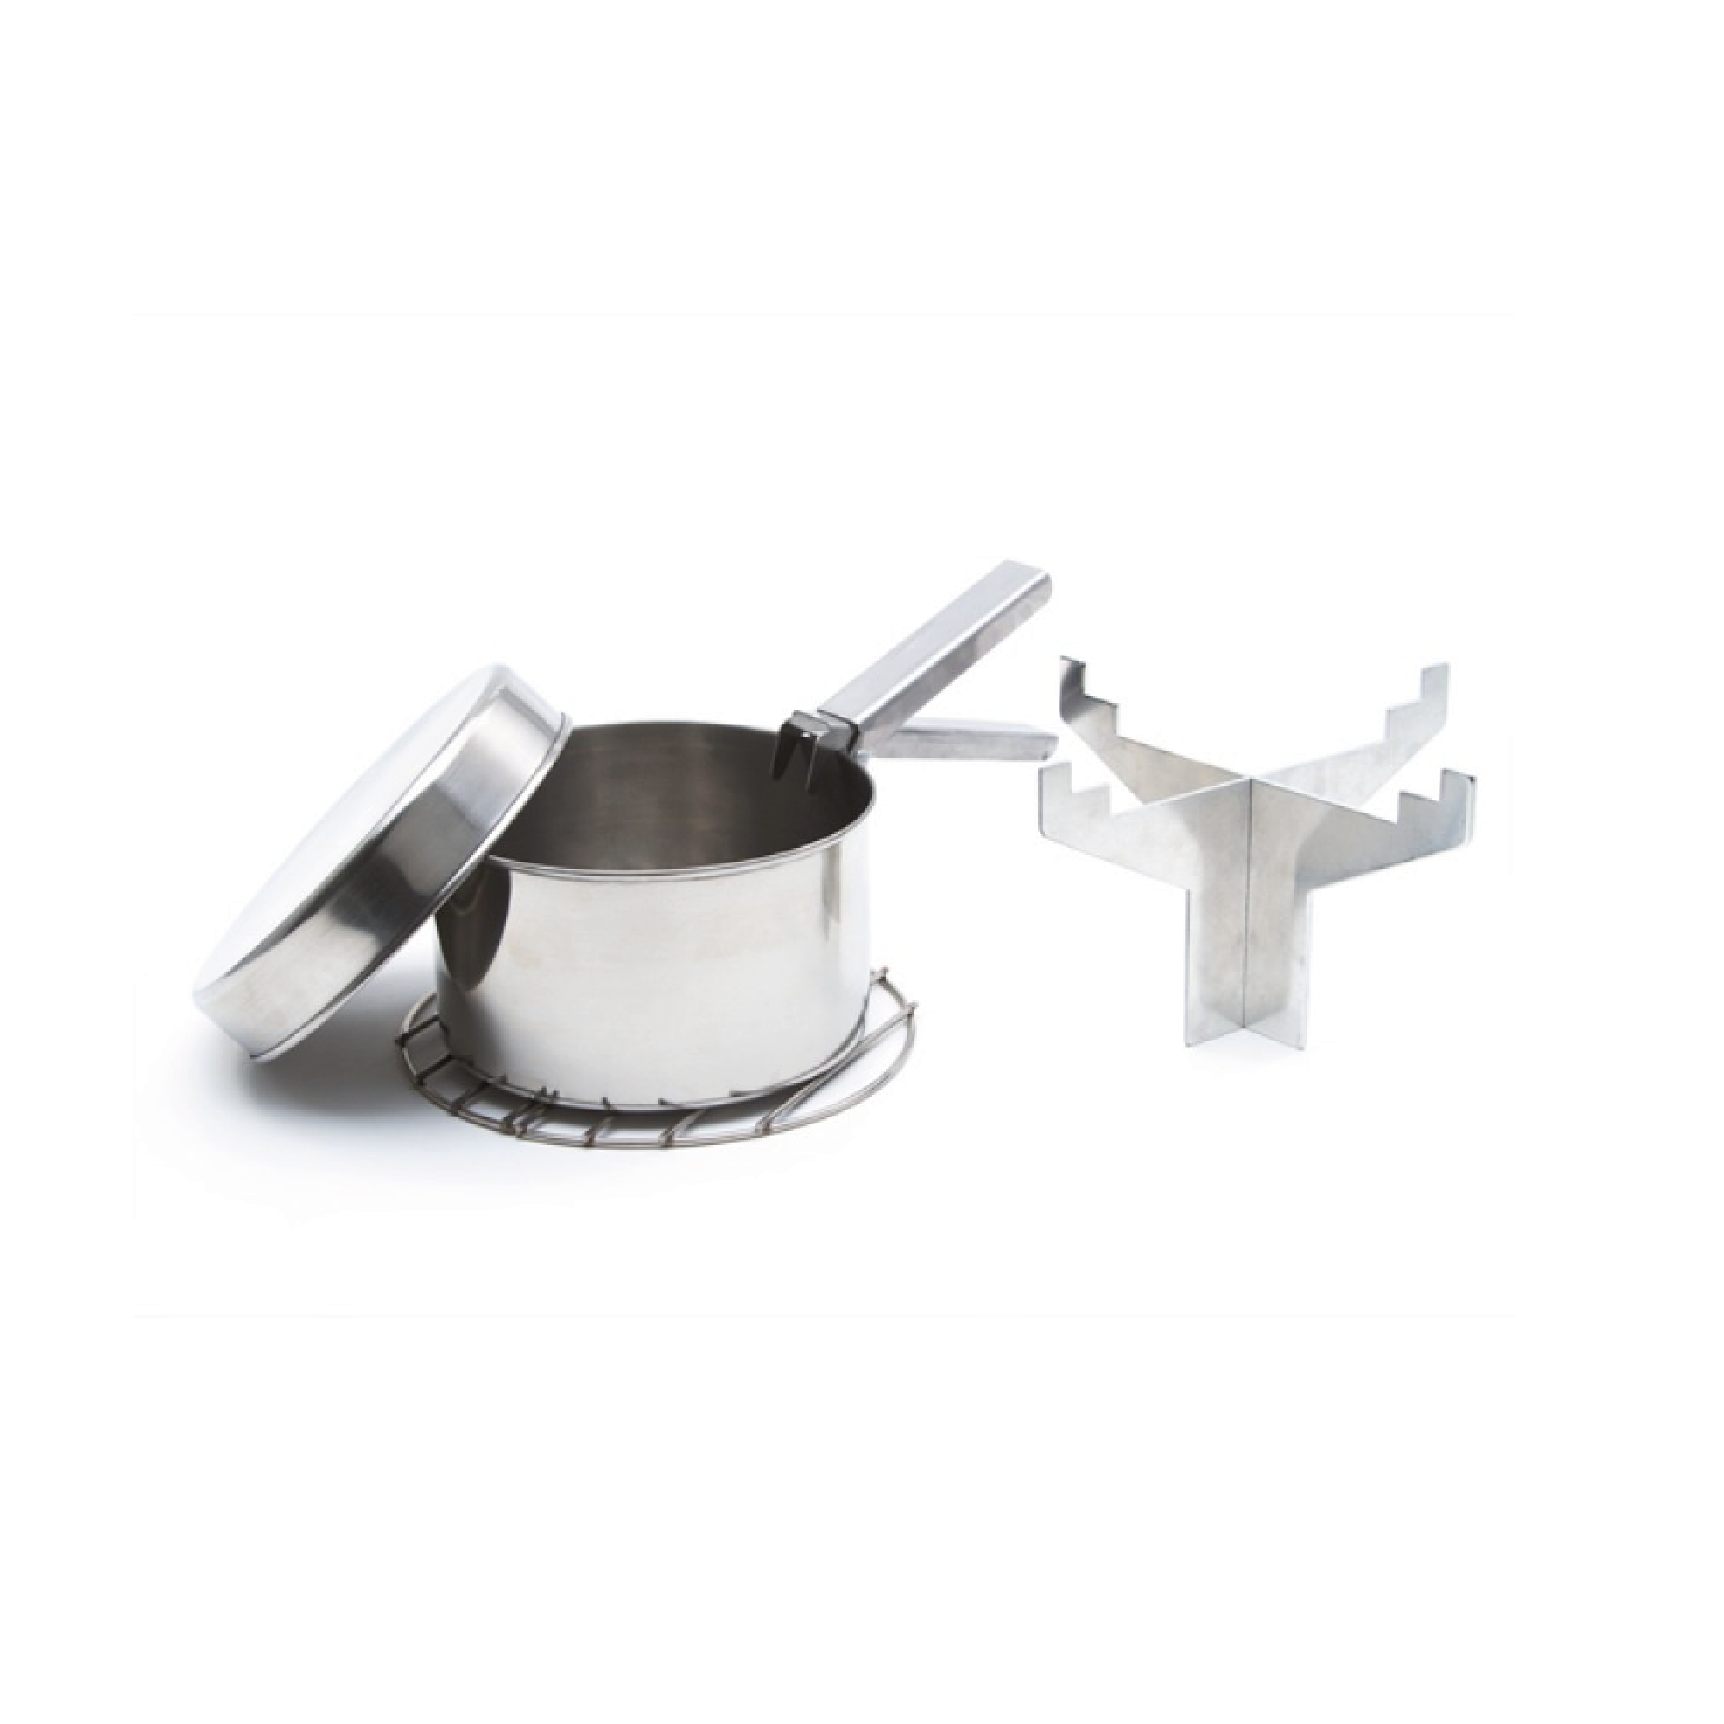 Kelly Kettle Scout Kit Parts 1.png